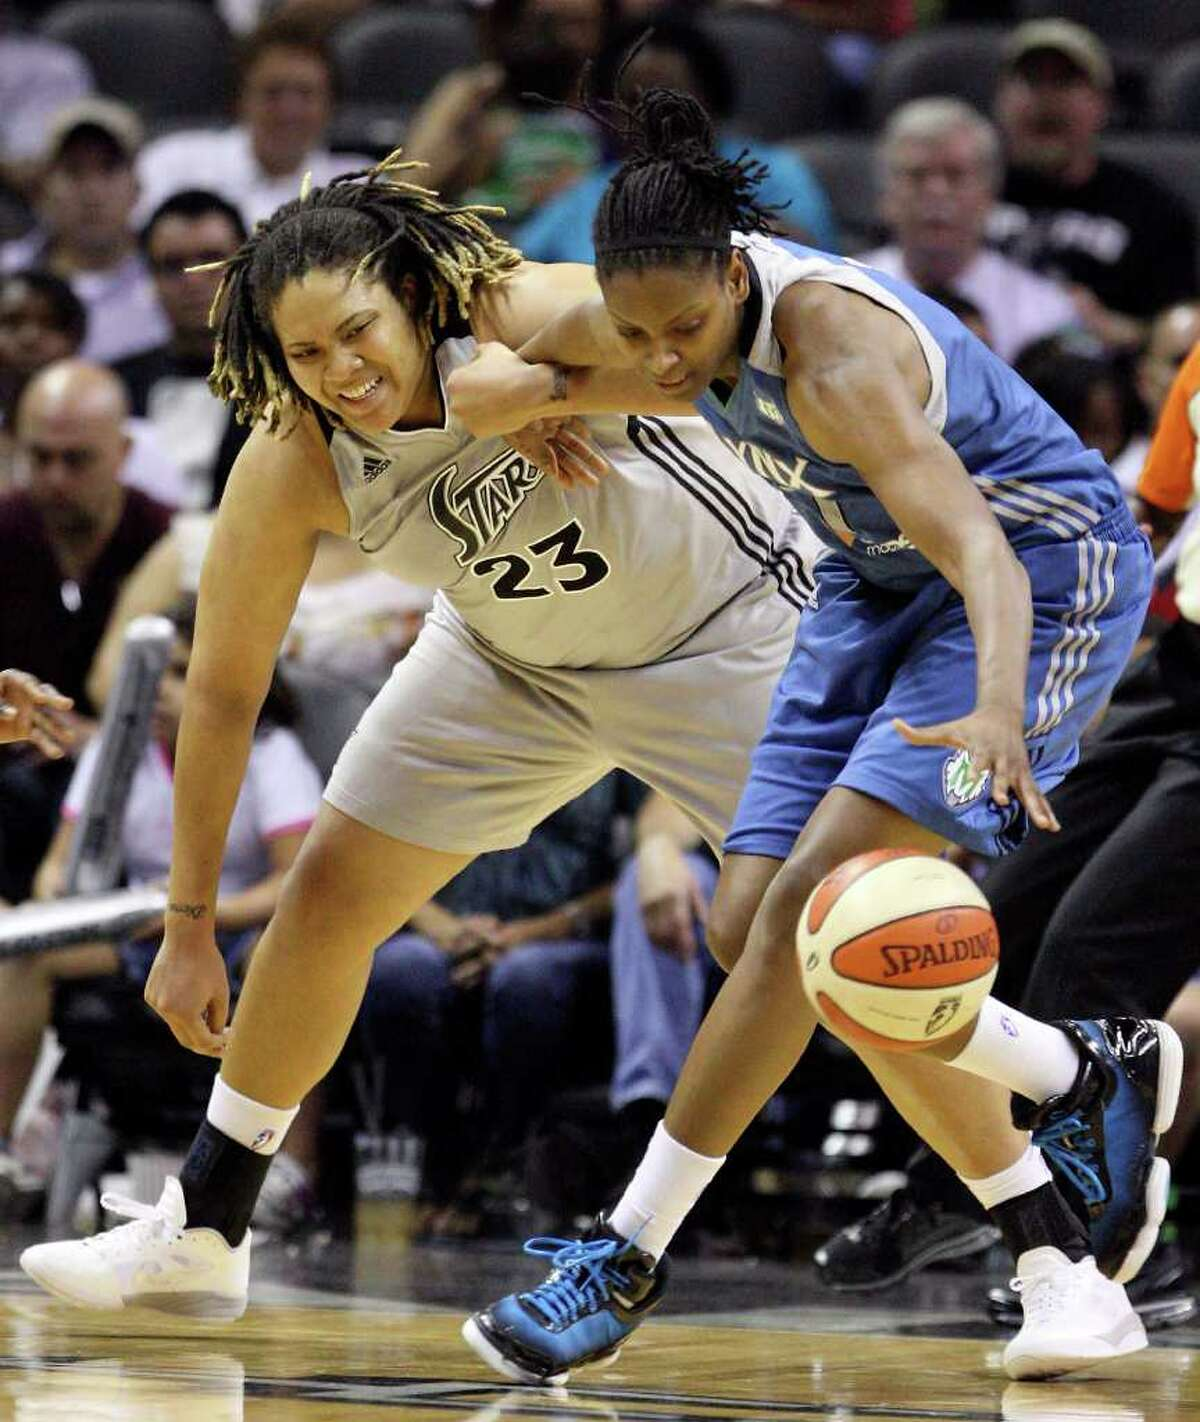 Jessica Adair (right): Currently plays for the Minnesota Lynx of the WNBA.